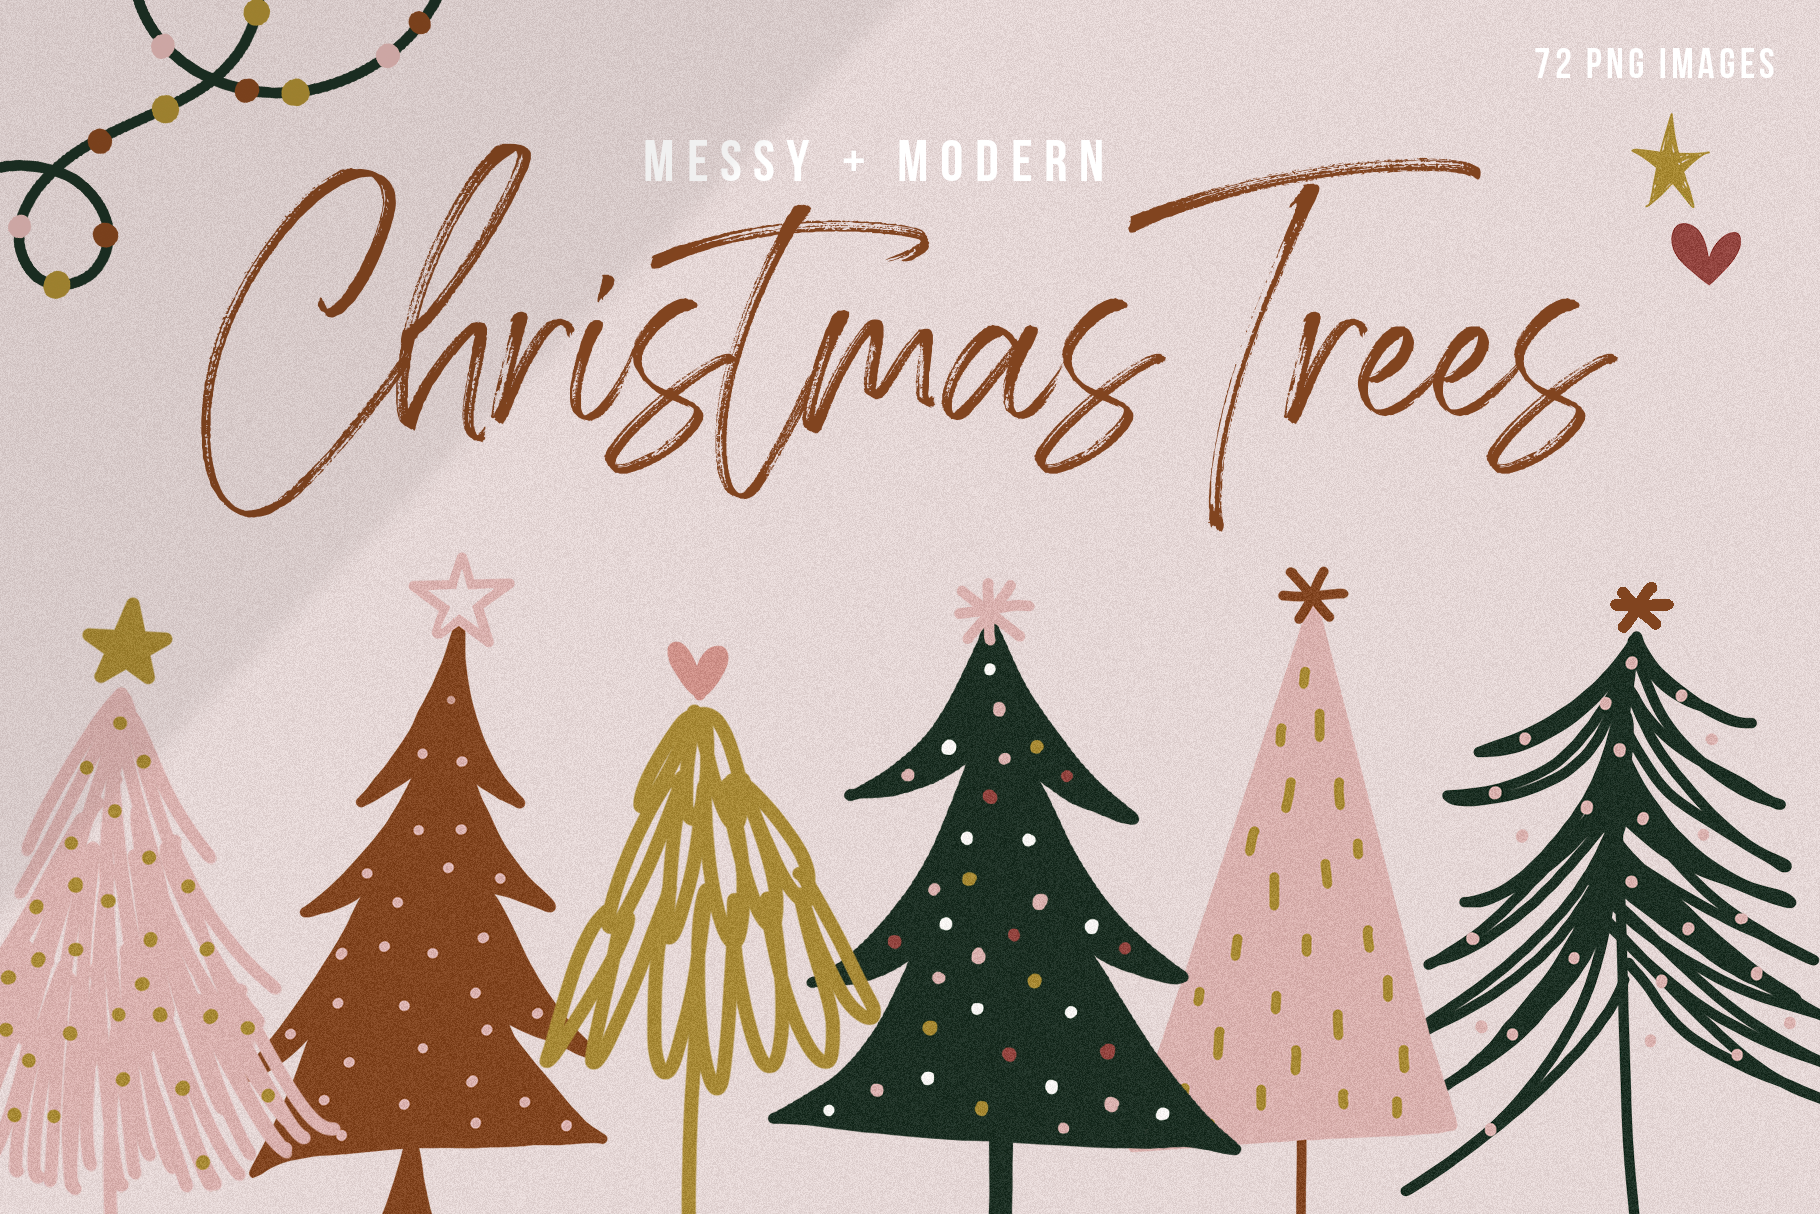 Modern & Messy Christmas Tree Illustrations.